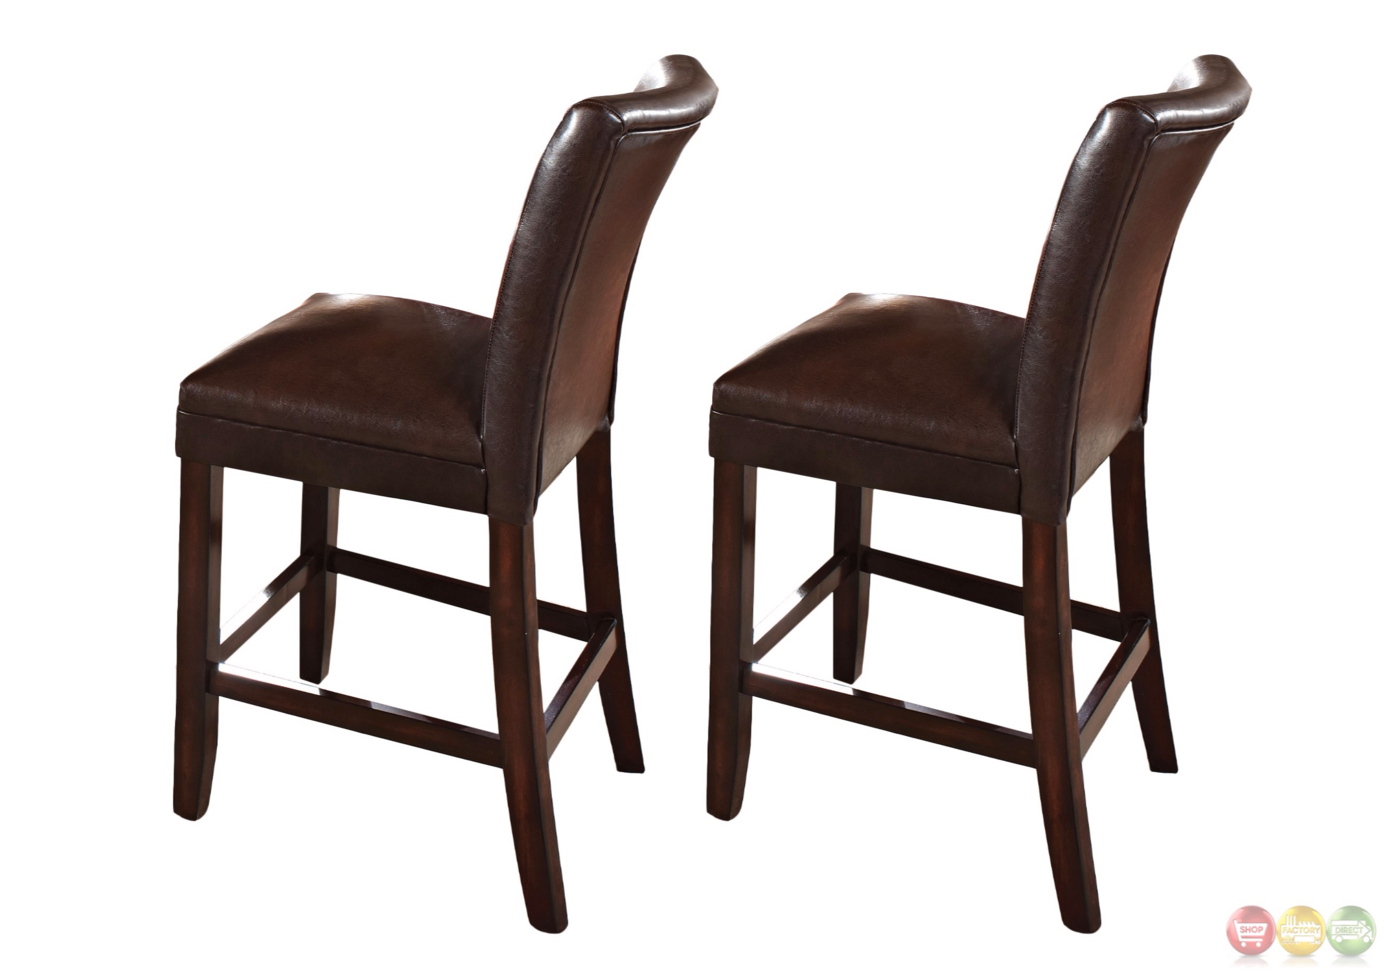 Counter Height Chairs Set Of 2 Hartford Brown Leather Upholstered Counter